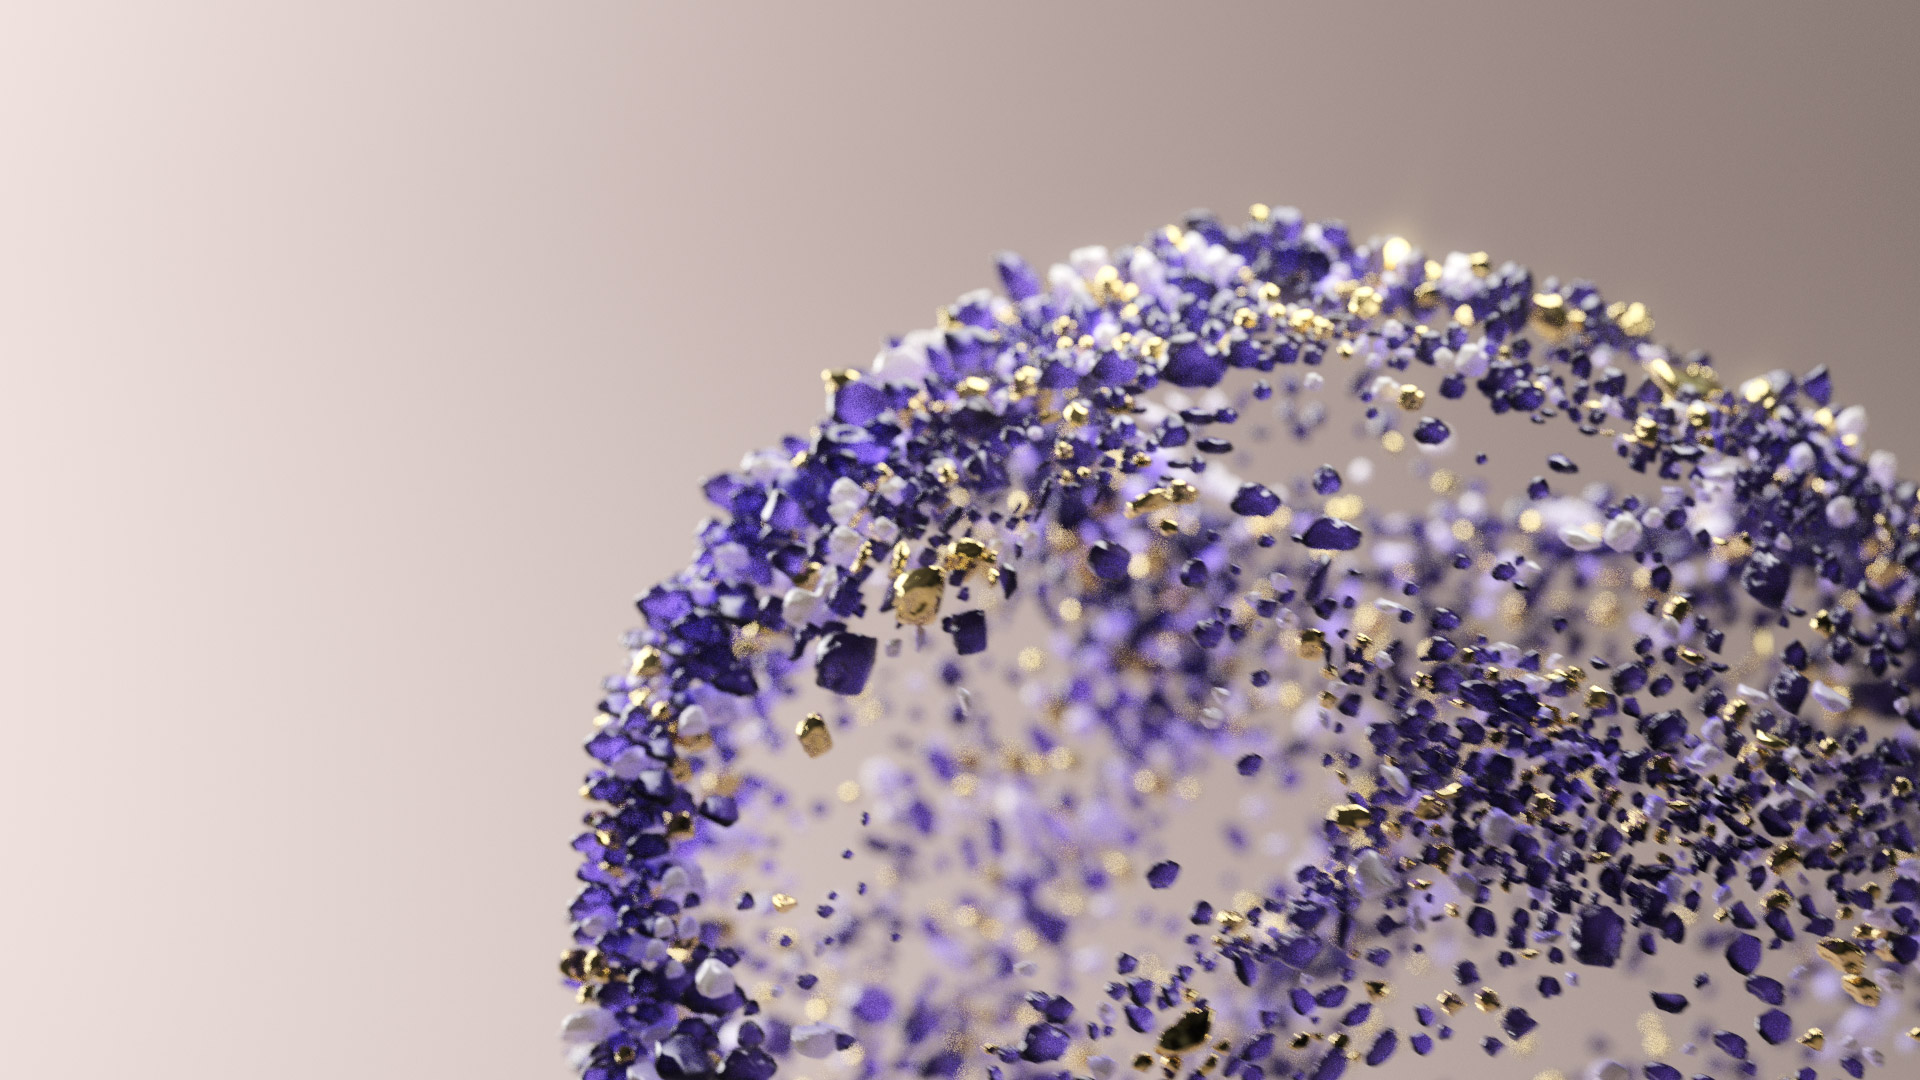 particle_still_05